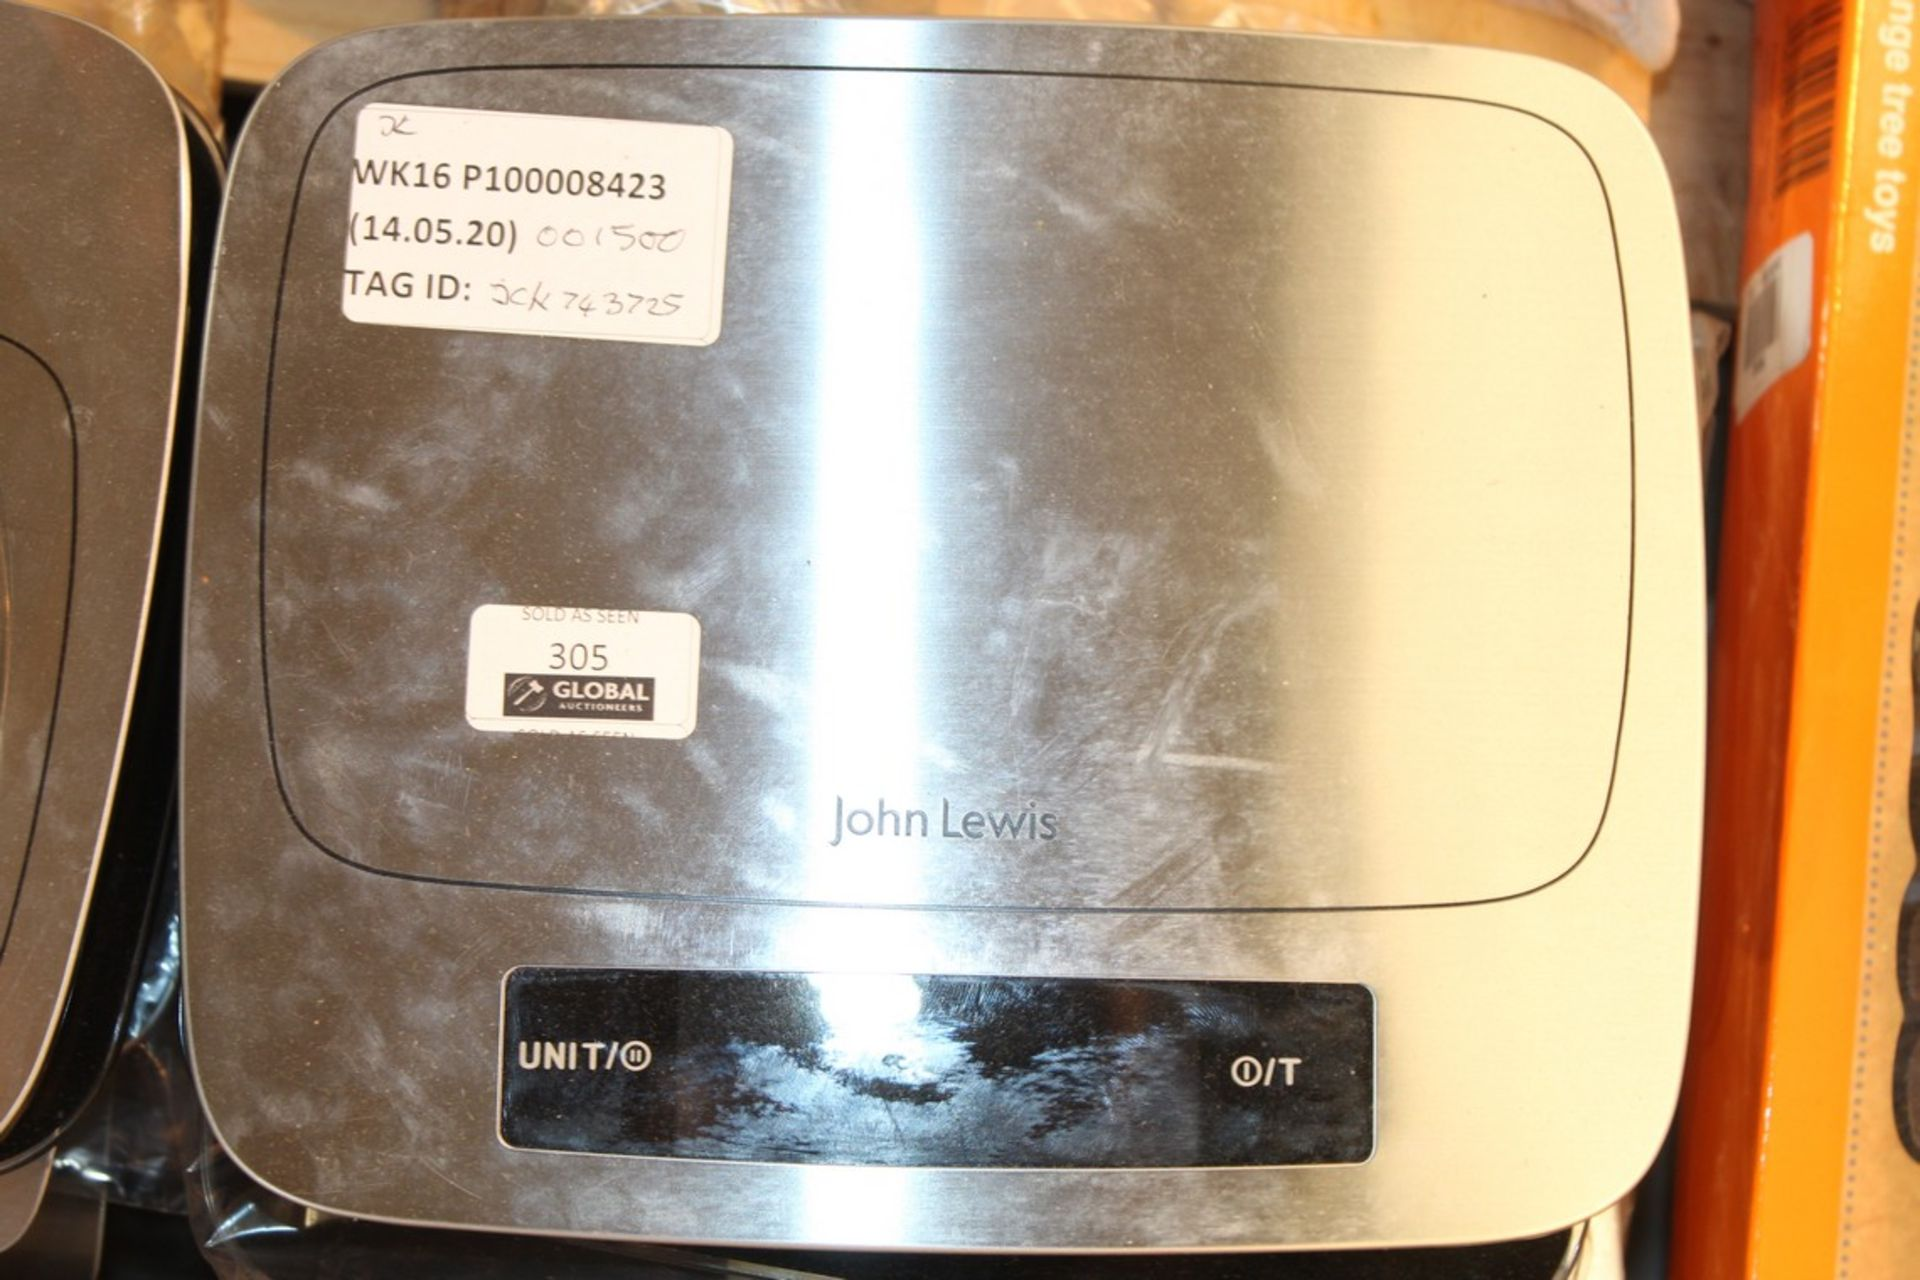 Lot 305 - Pairs Of John Lewis And Partners Digital Weighing Scales To In RRP £10-£20 Each (742398) (744573) (